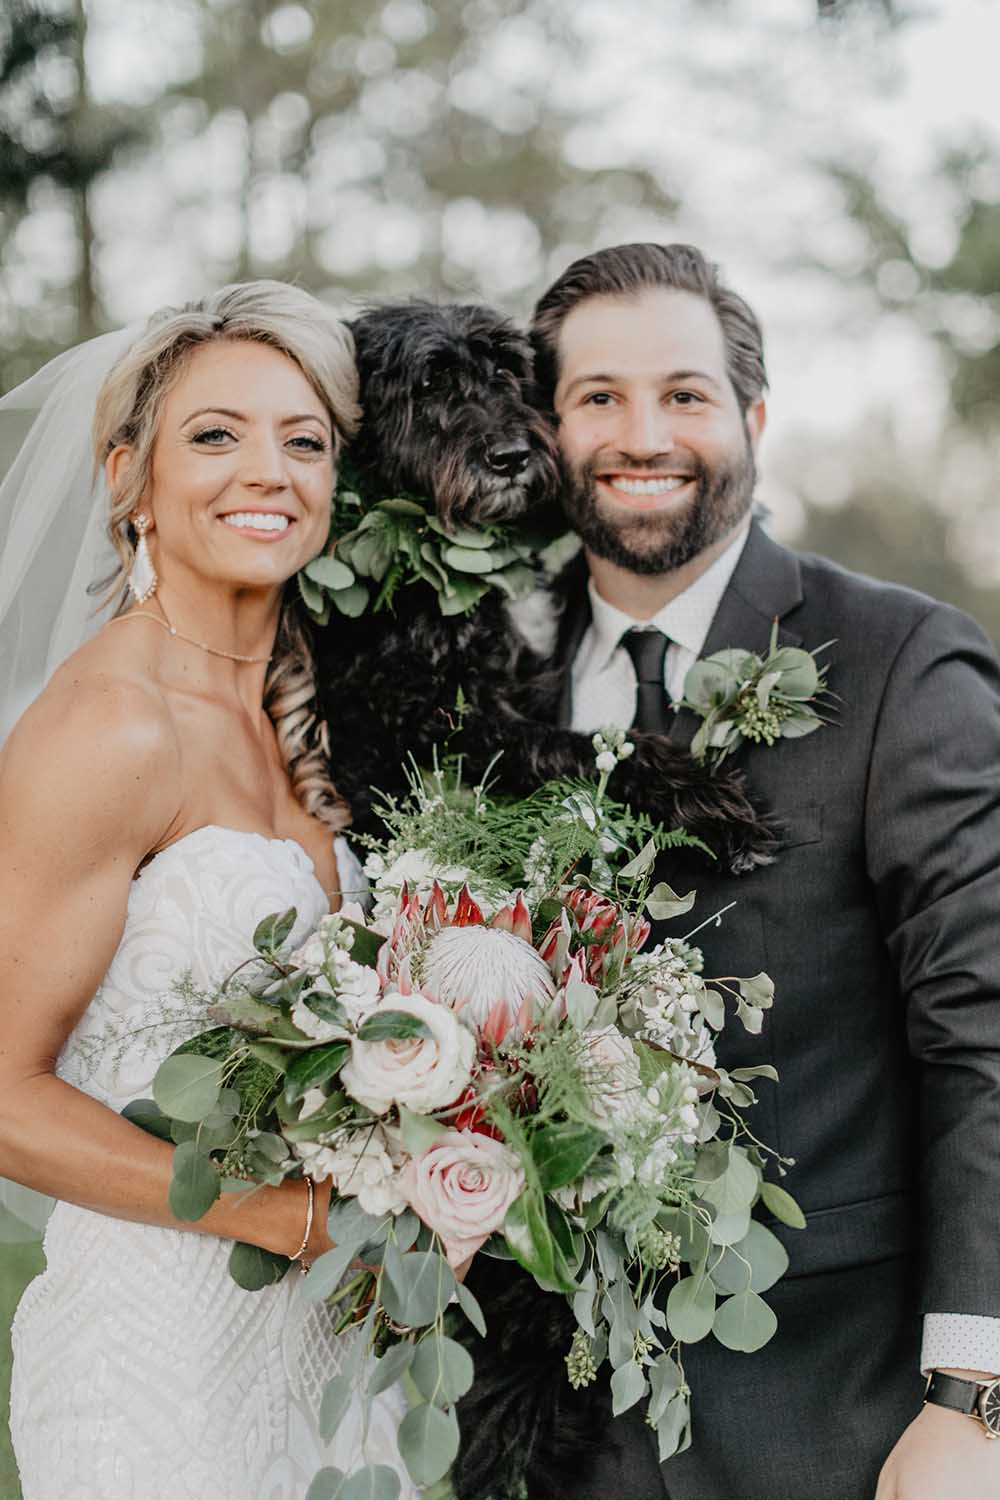 Bride & Groom with Dog with Greenery Collar | photo by Emily Green Photography | featured on I Do Y'all